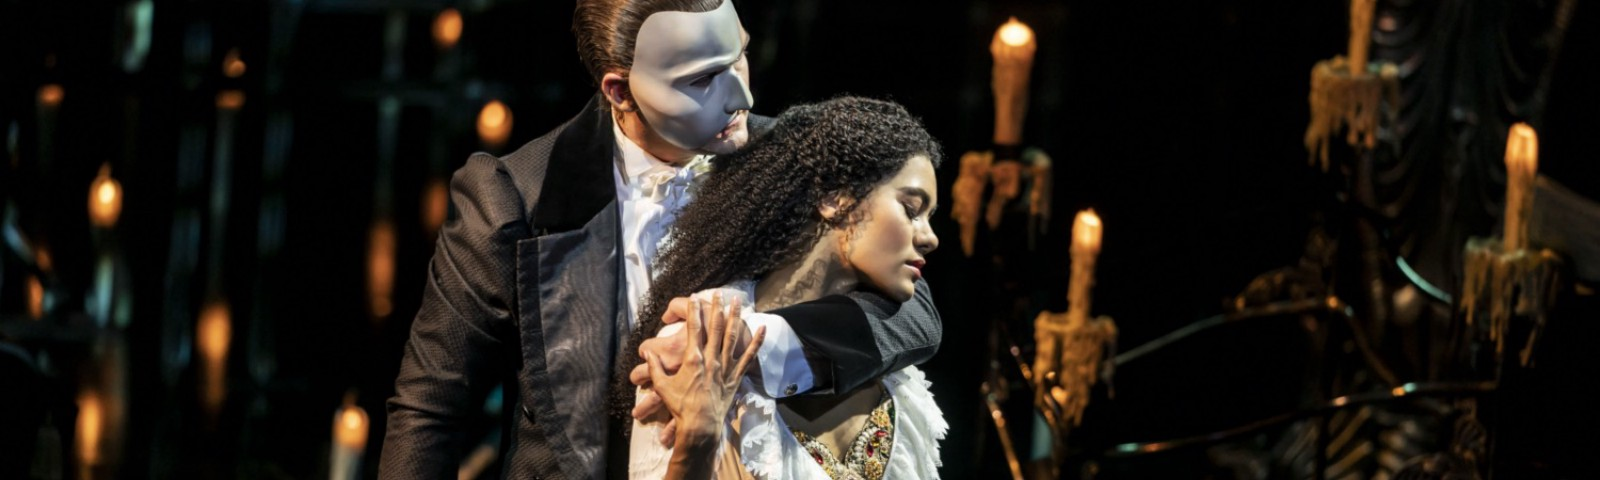 The Phantom (a dark haired white man in a suit with a white mask covering half of his face) holds Christine (a curly haired black woman in a white dressing gown) on a candlelit set.